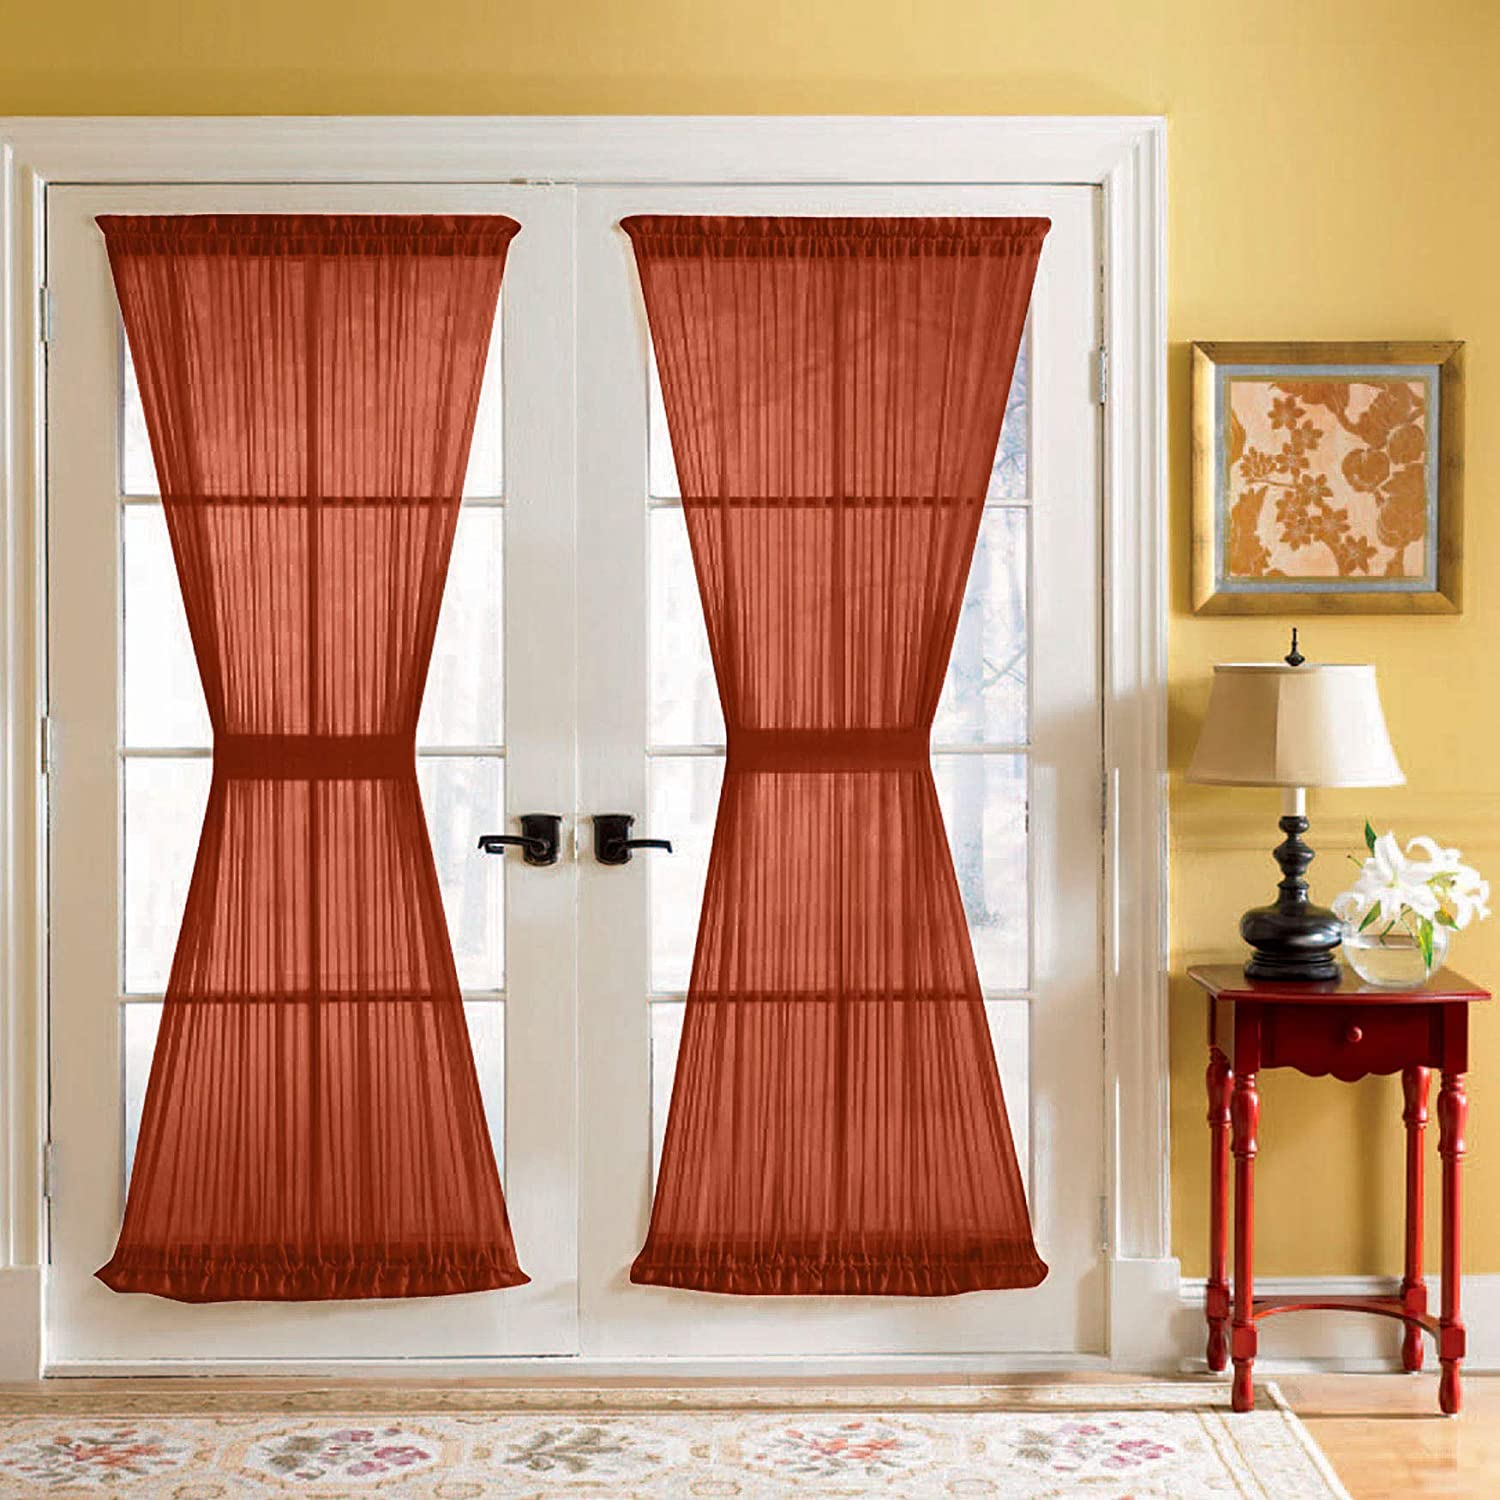 Amazon Com Brylanehome Sheer Voile Door Panel With Tiebacks 60i W 40i L Autumn Leaves Home Kitchen